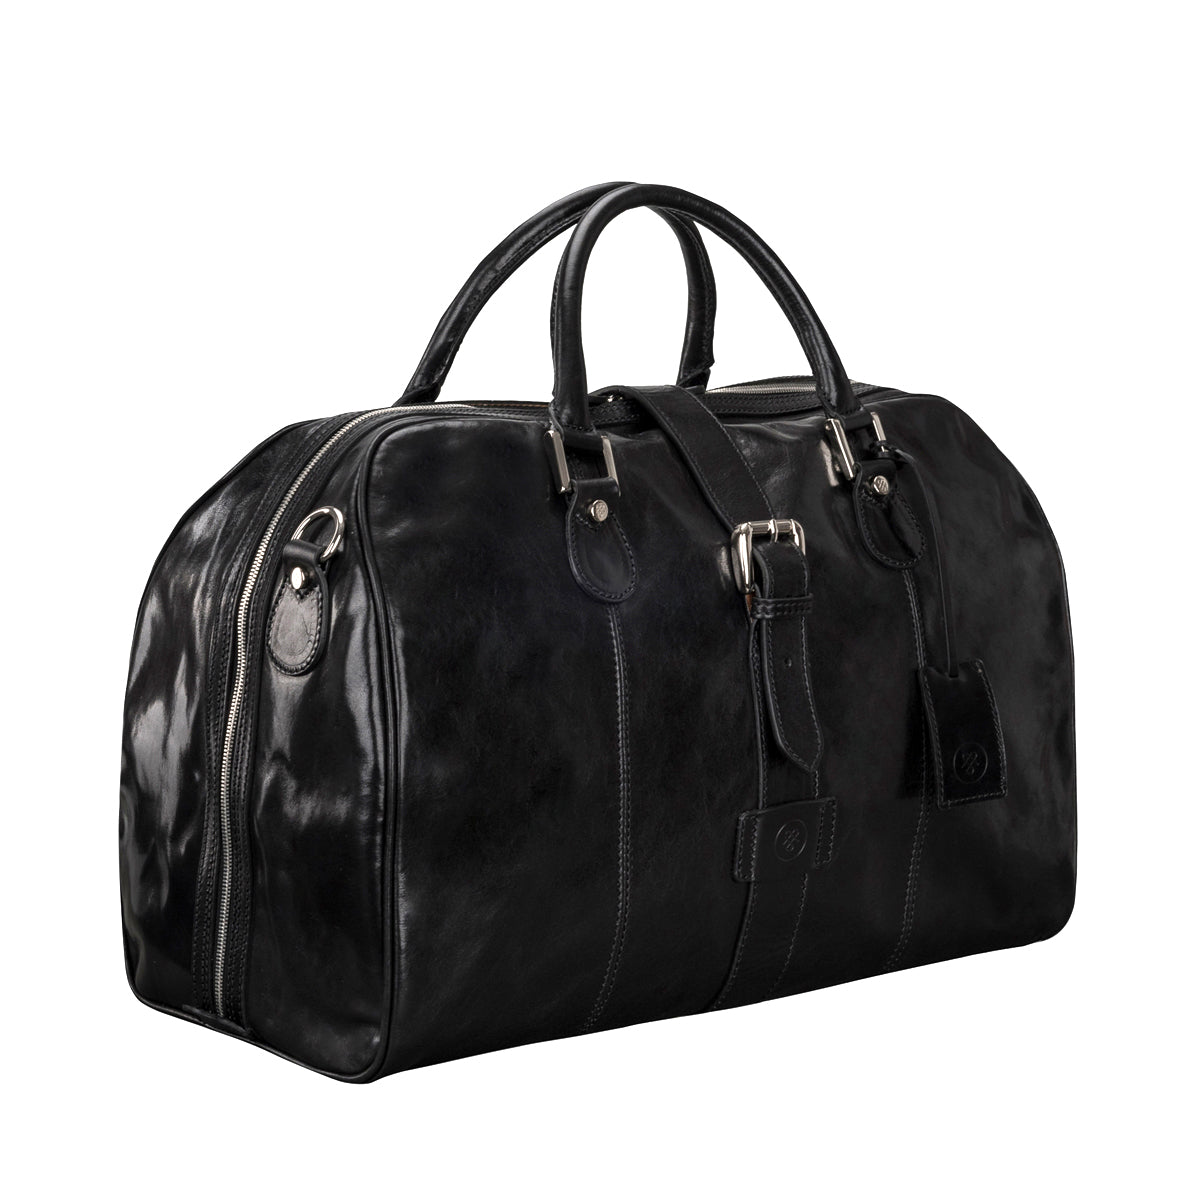 Image 2 of the 'Farini' Black Veg-Tanned Leather Luxury Hand Luggage